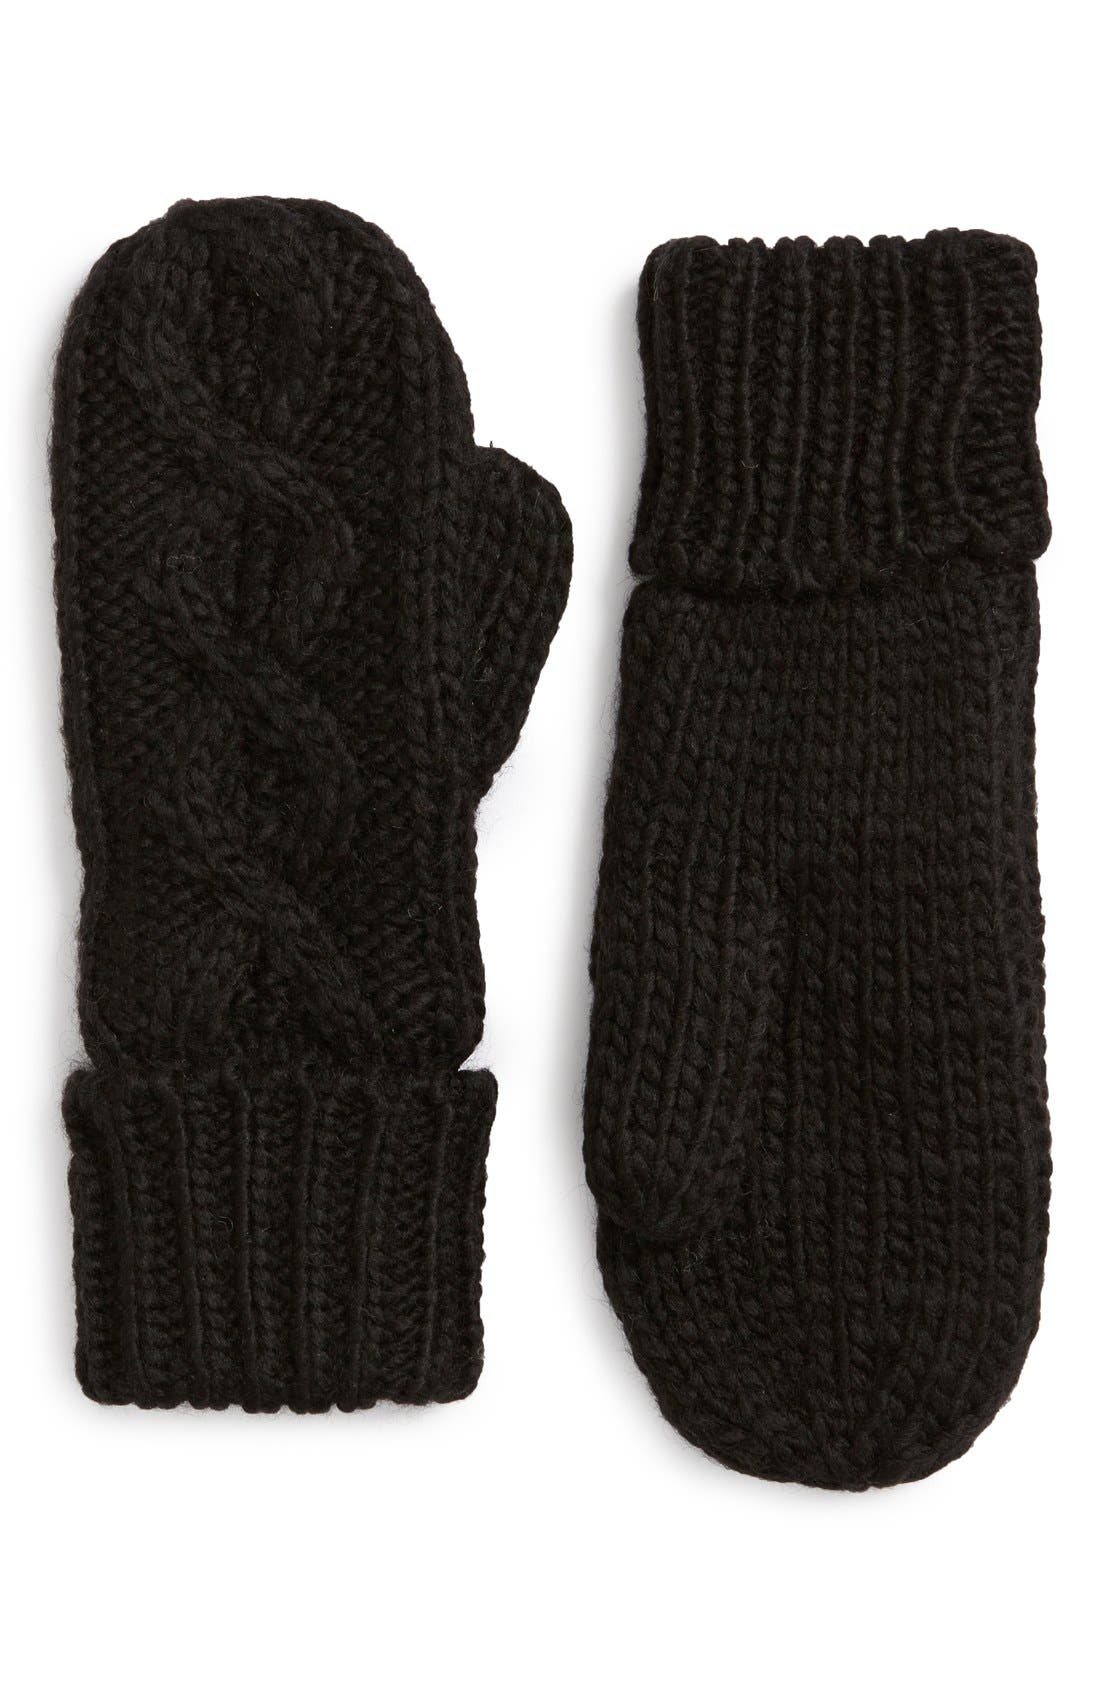 'Betto' Cable Knit Mittens,                         Main,                         color, Black